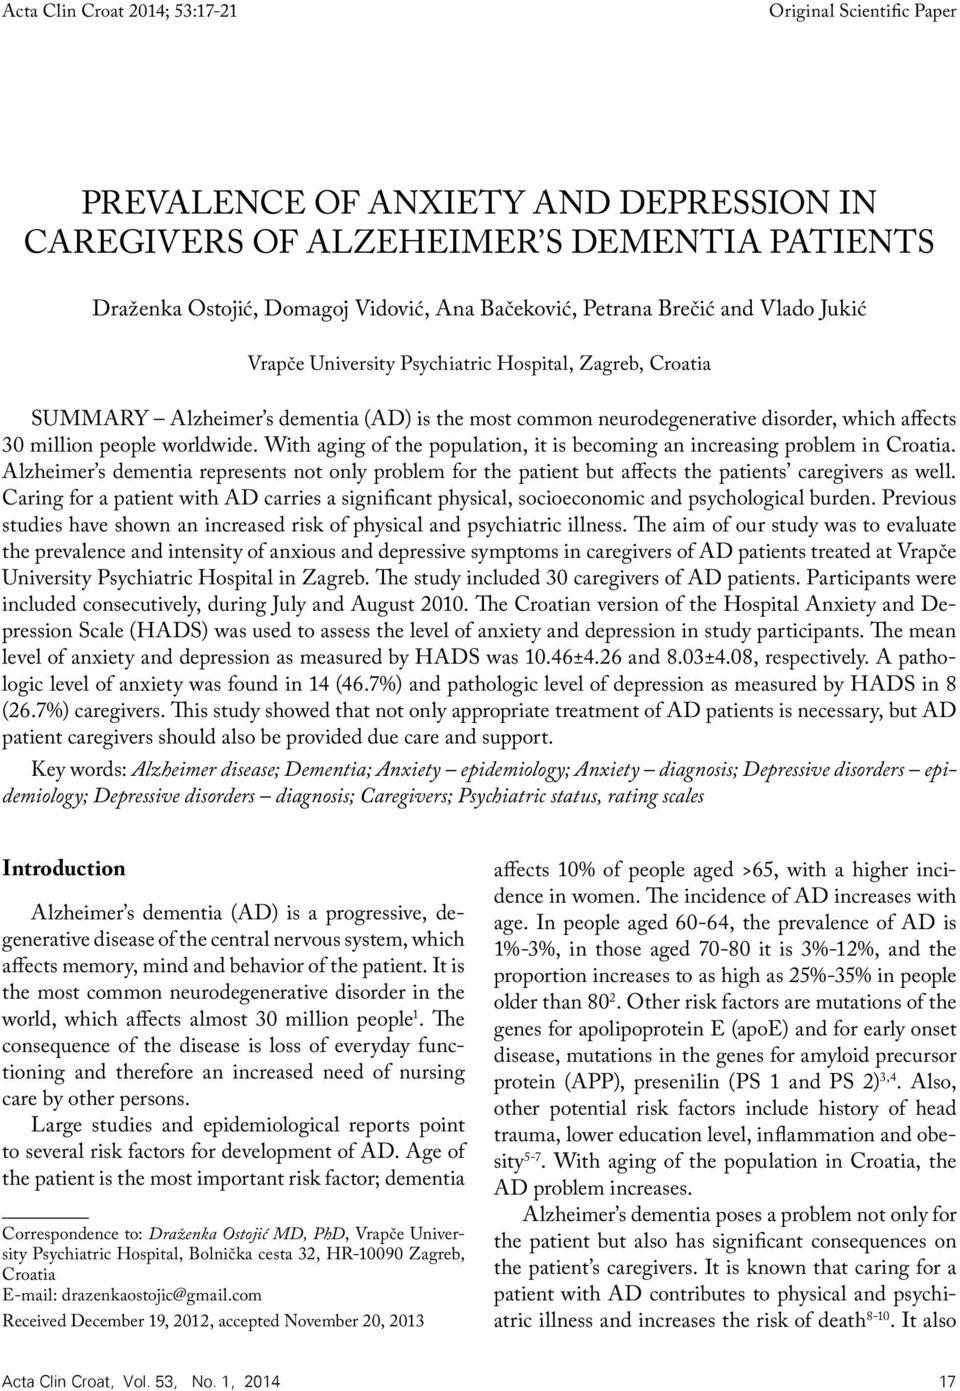 worldwide. With aging of the population, it is becoming an increasing problem in Croatia. Alzheimer s dementia represents not only problem for the patient but affects the patients caregivers as well.